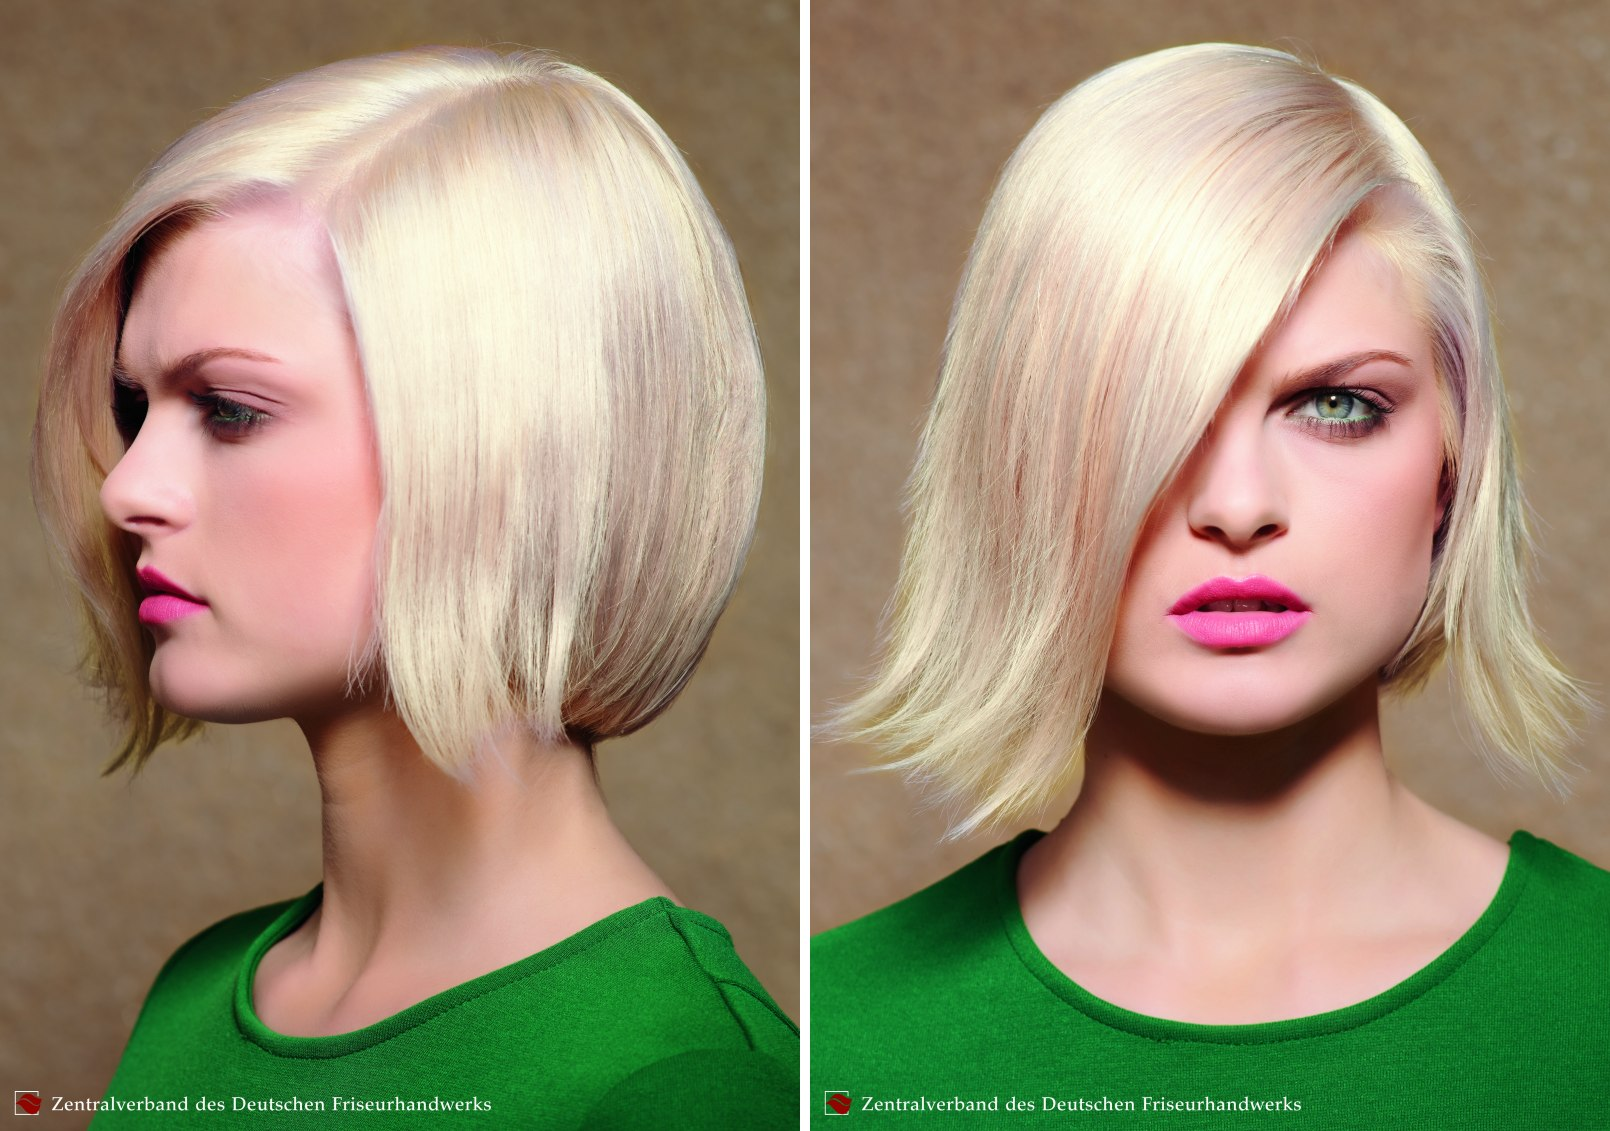 Rounded chin length bob hairstyle with the front curved outward